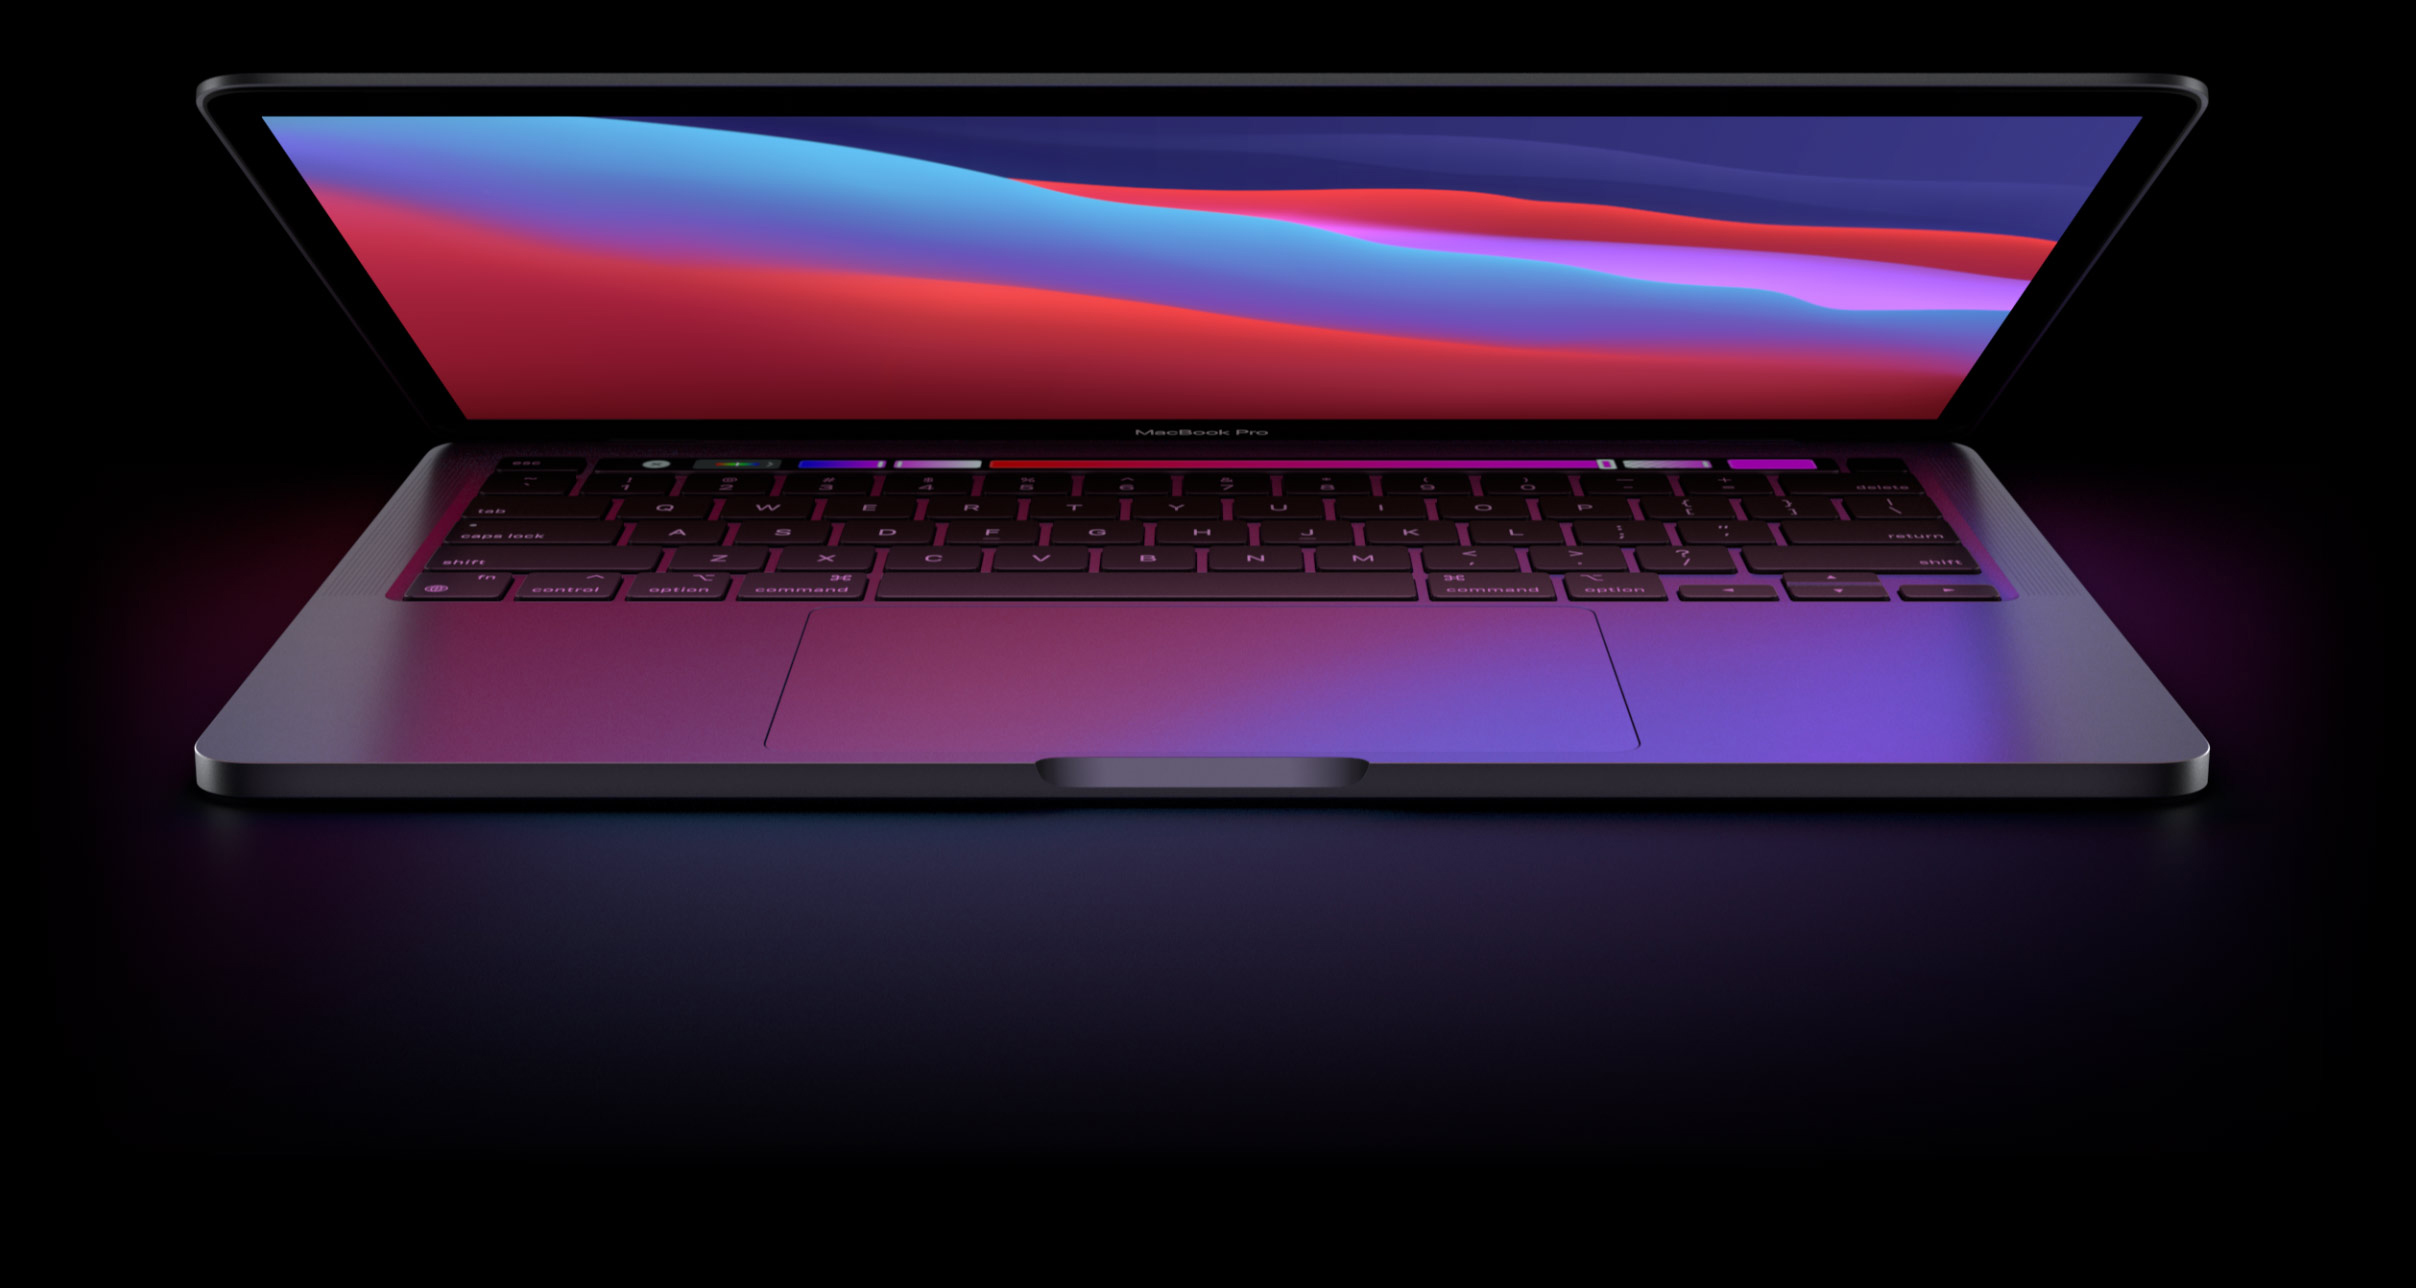 #Apple 13-inch MacBook Pro: Apple M1 chip with 8-core CPU and 8-core GPU, 256GB SSD - Silver